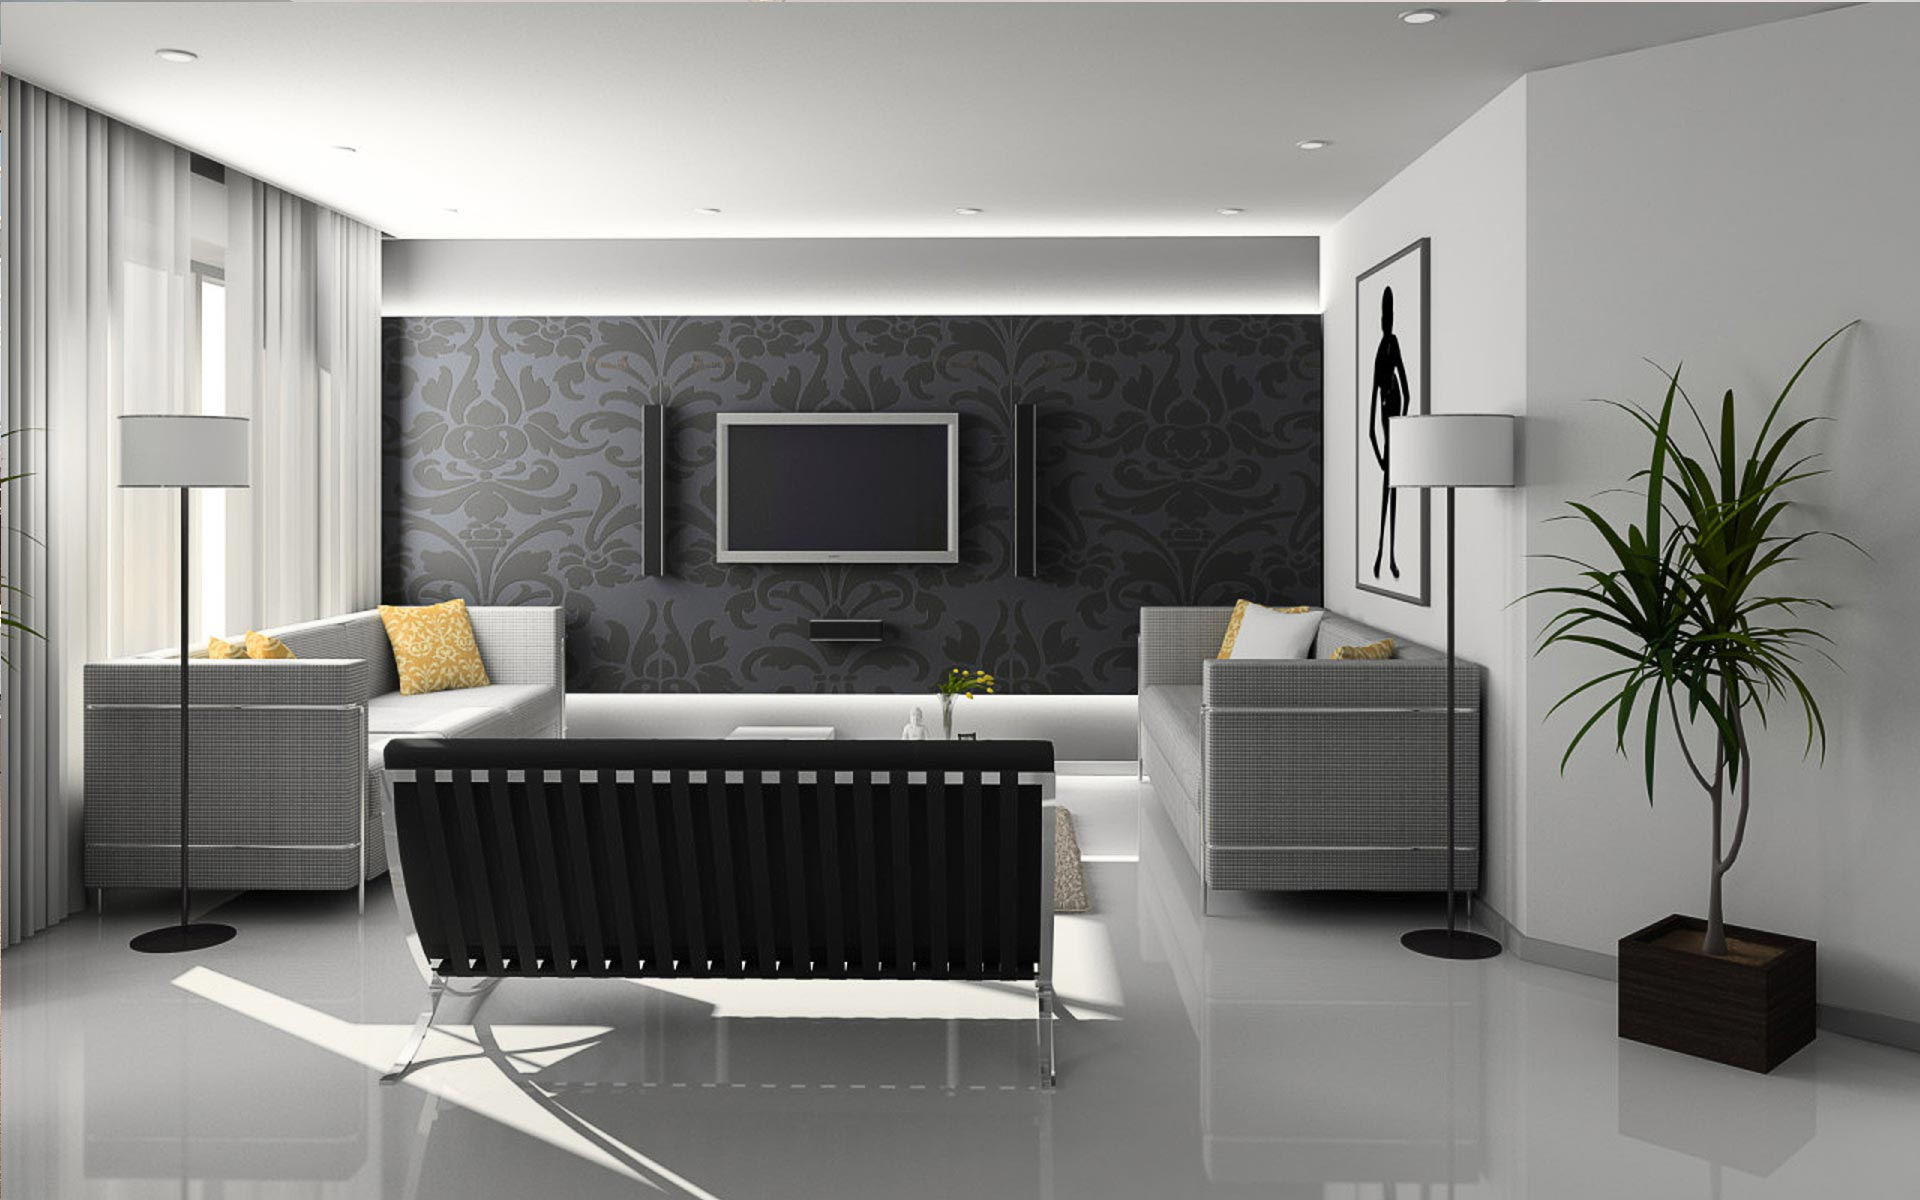 home_interior_project1_image2.jpg